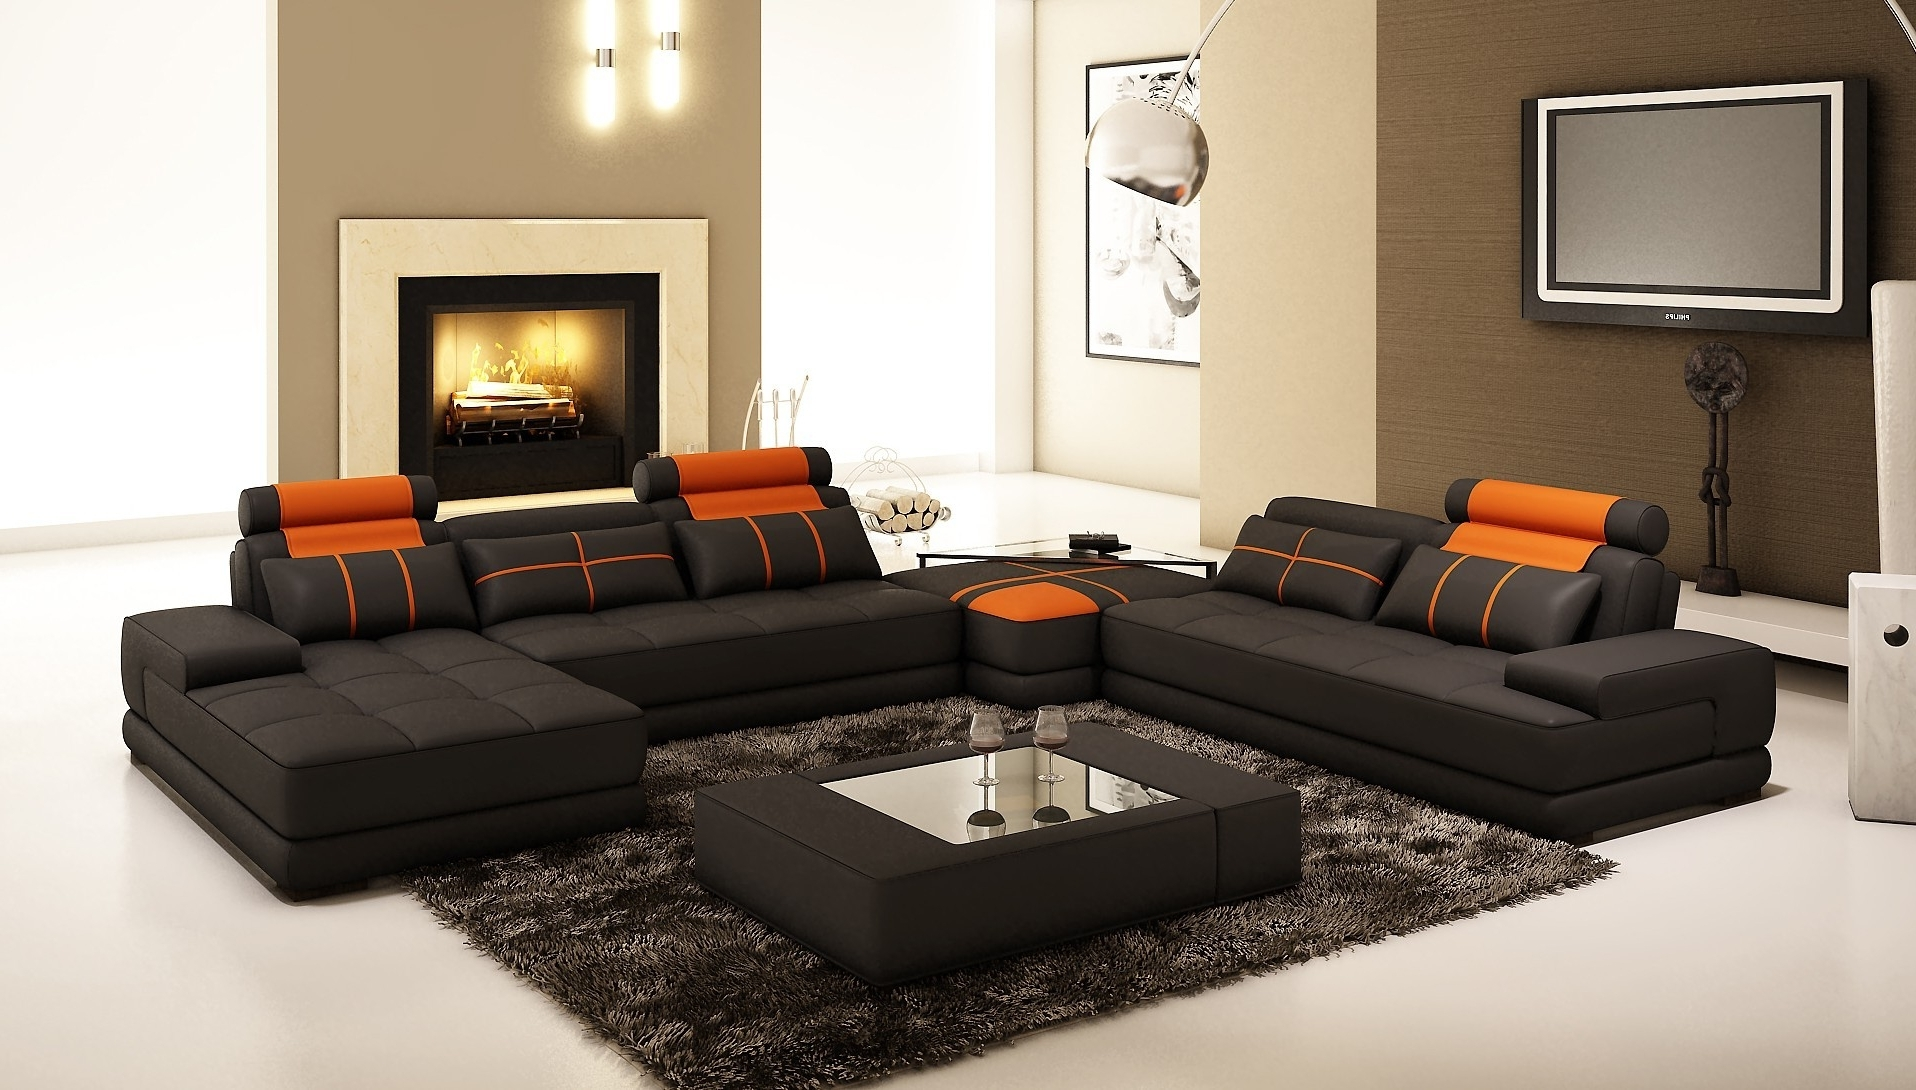 2019 Furniture : Sectional Sofa 102 X 102 Corner Couch Black Recliner In 102X102 Sectional Sofas (View 8 of 20)